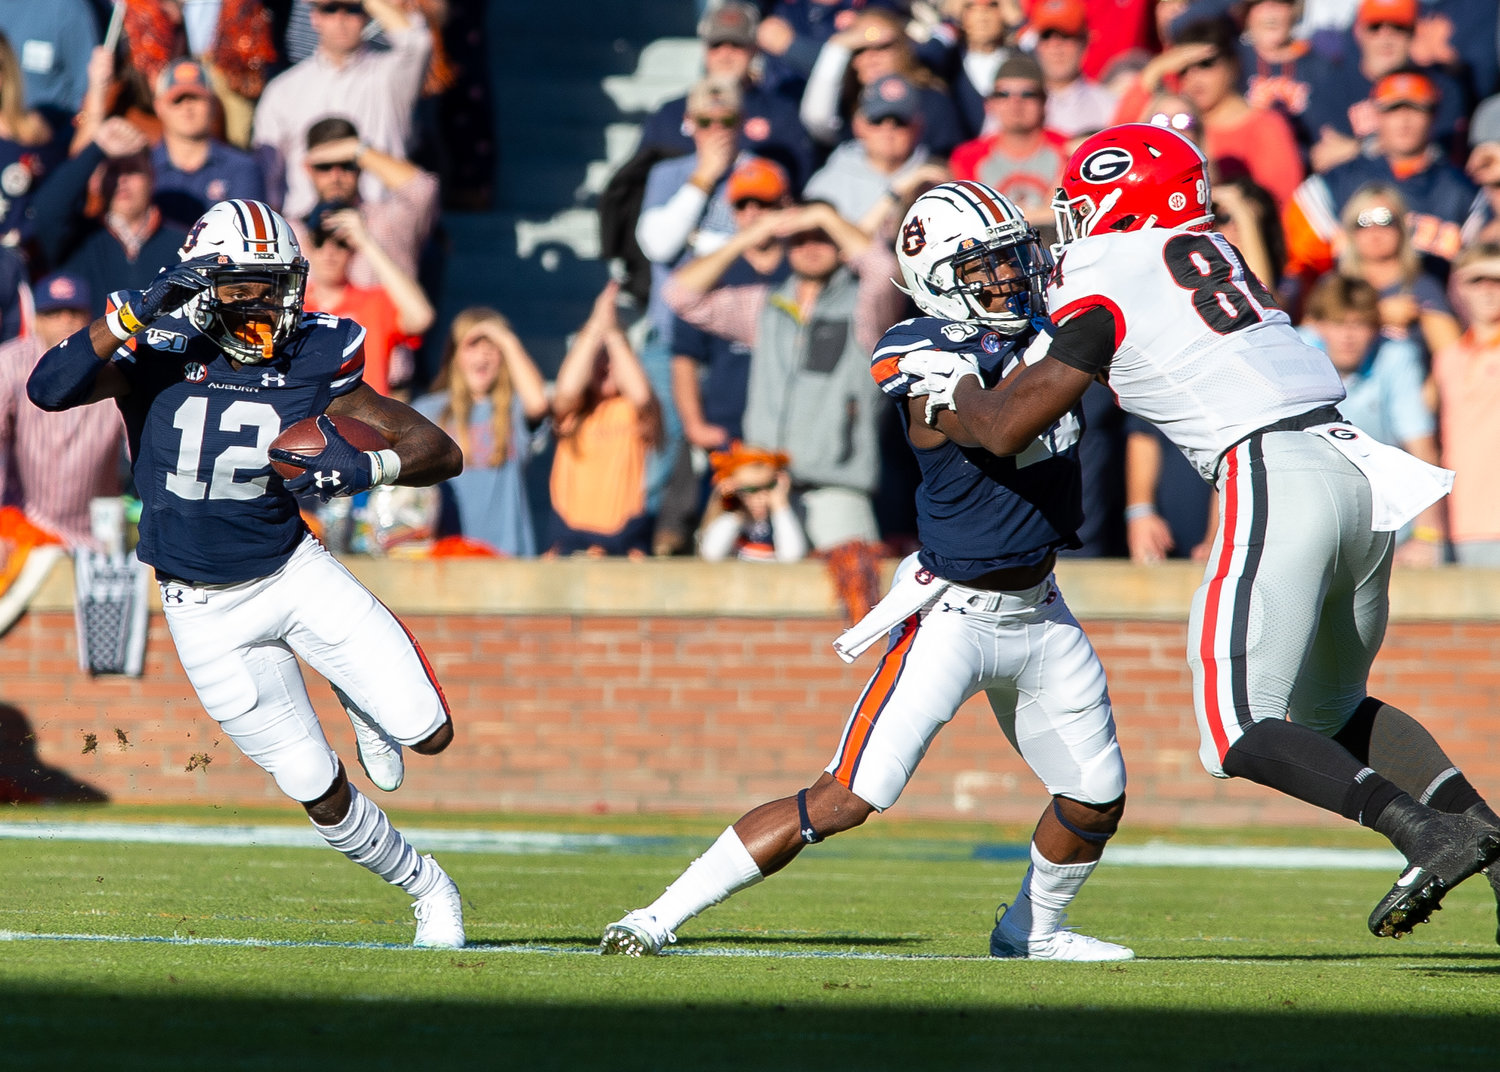 Auburn Tigers wide receiver Eli Stove (12) runs during the first half of Saturday's game, at Jordan-Hare Stadium in Auburn,, AL. Daily Mountain Eagle -  Jeff Johnsey